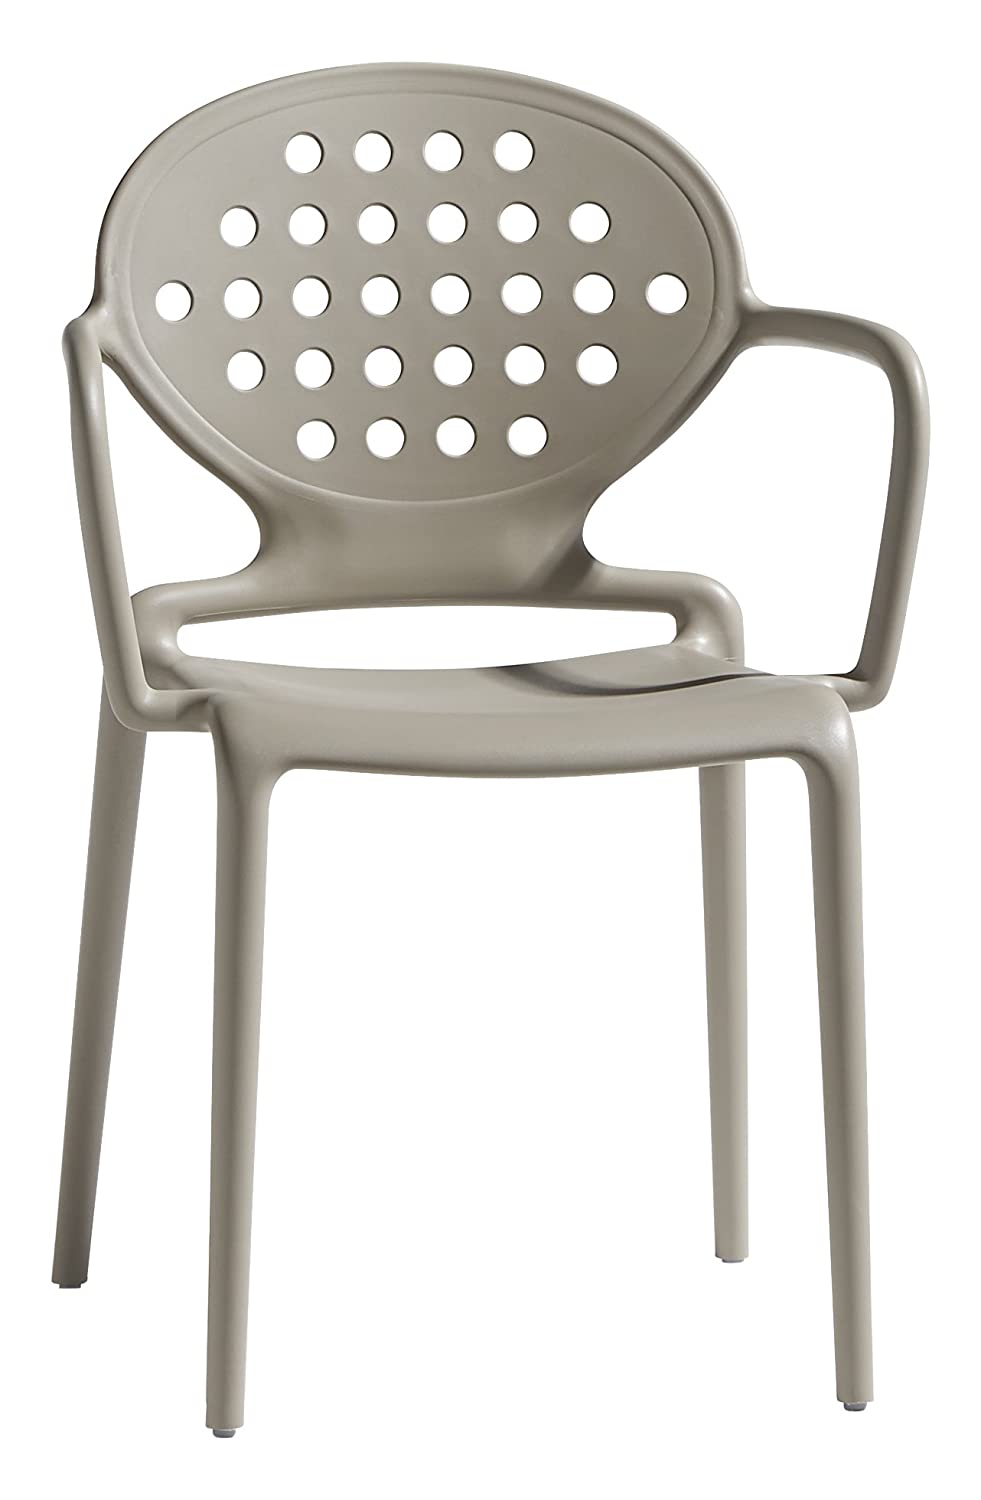 Grey Parada One Design 2284 15 Colette Modern Indoor//Outdoor Stackable Dining Chair